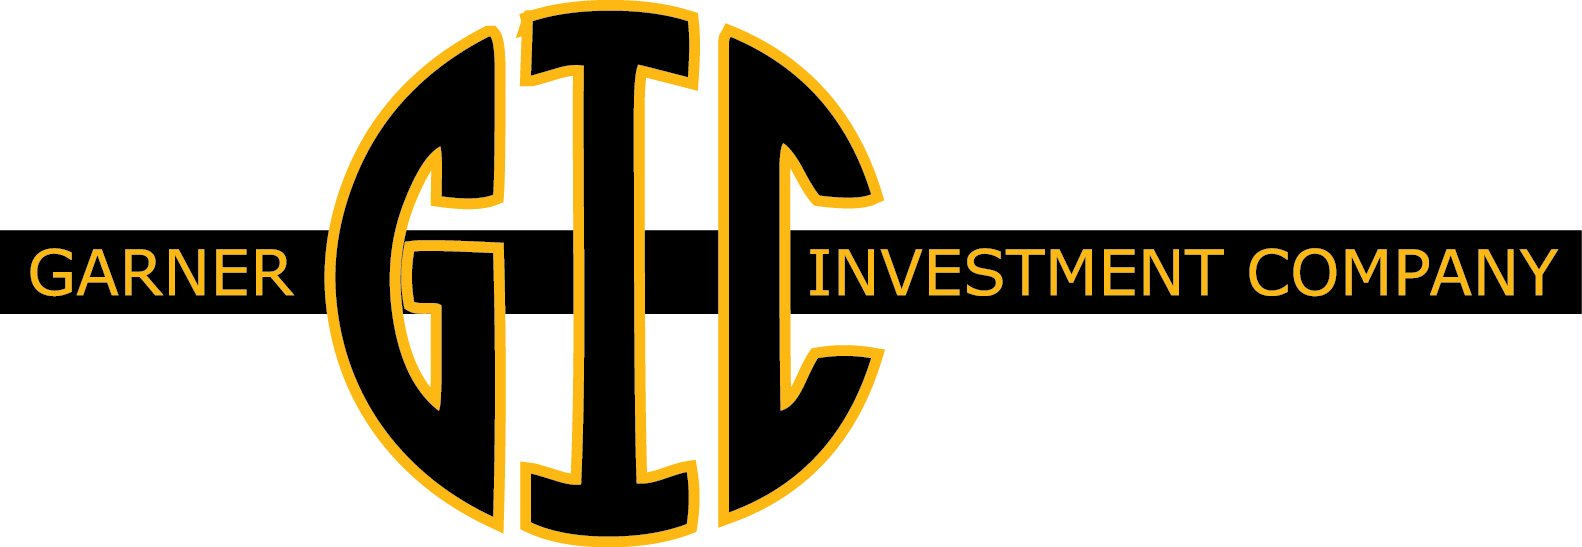 Garner Investment Company  logo